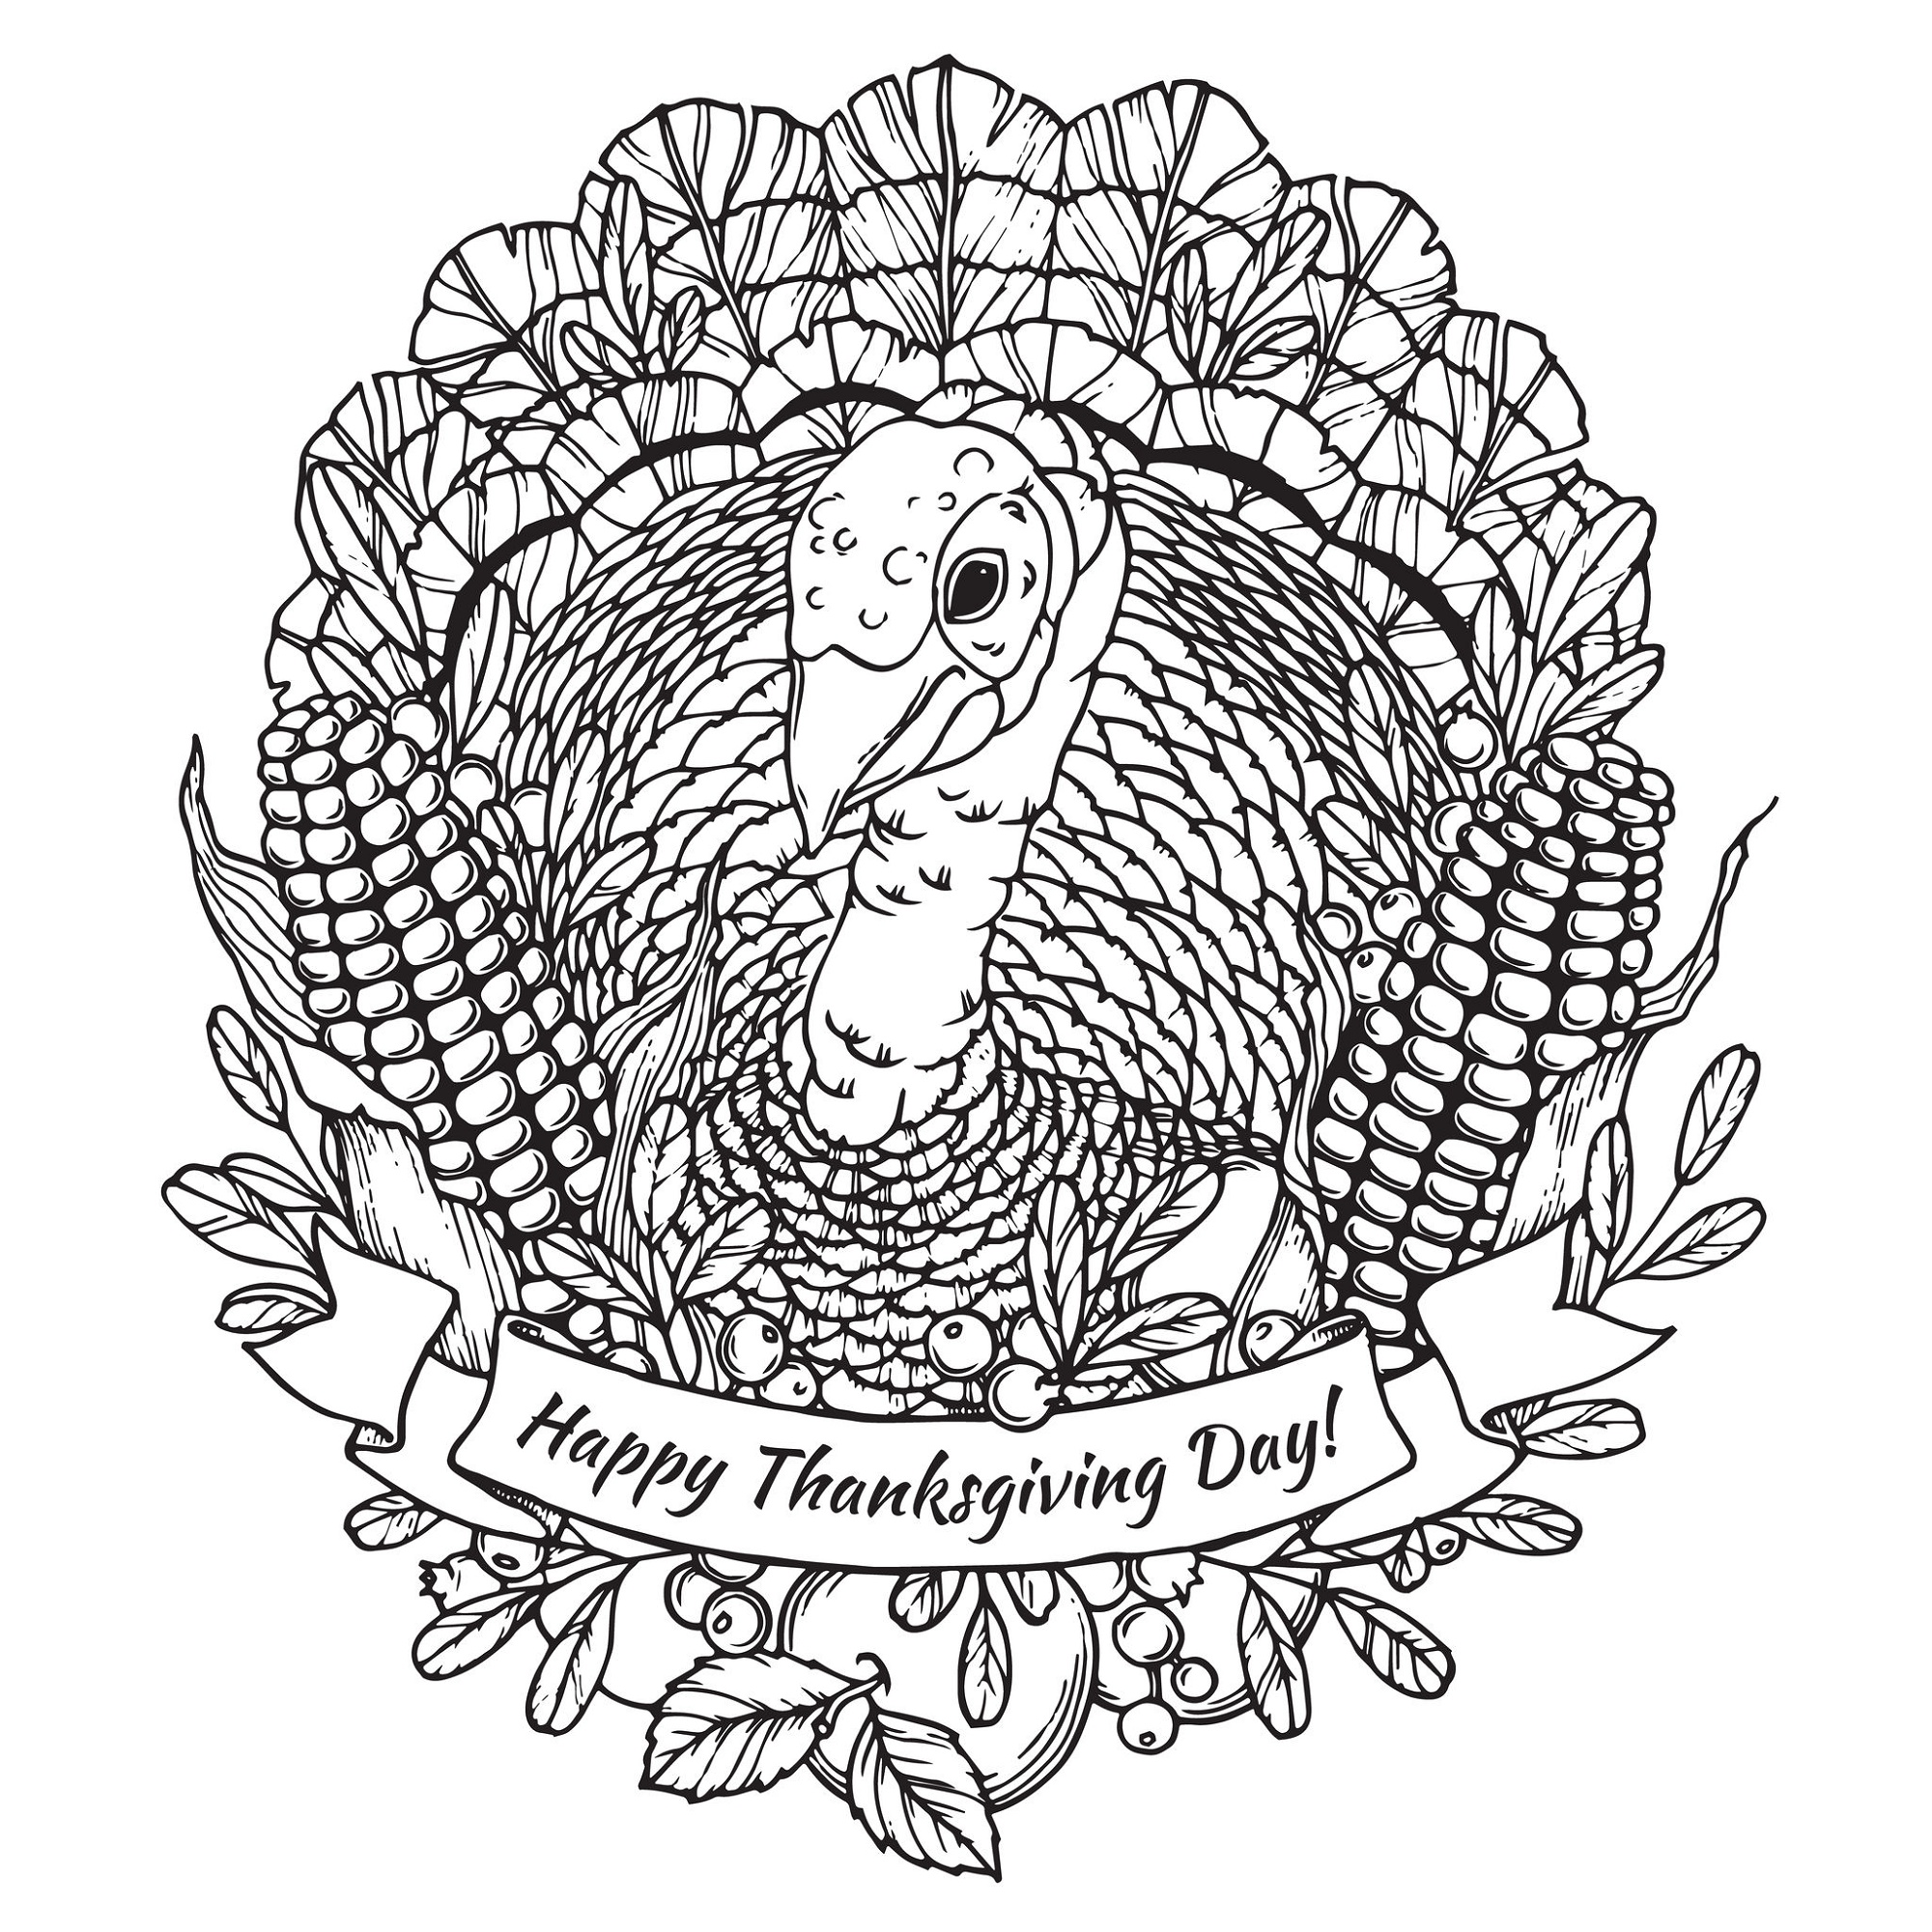 November Coloring Sheets For Adult